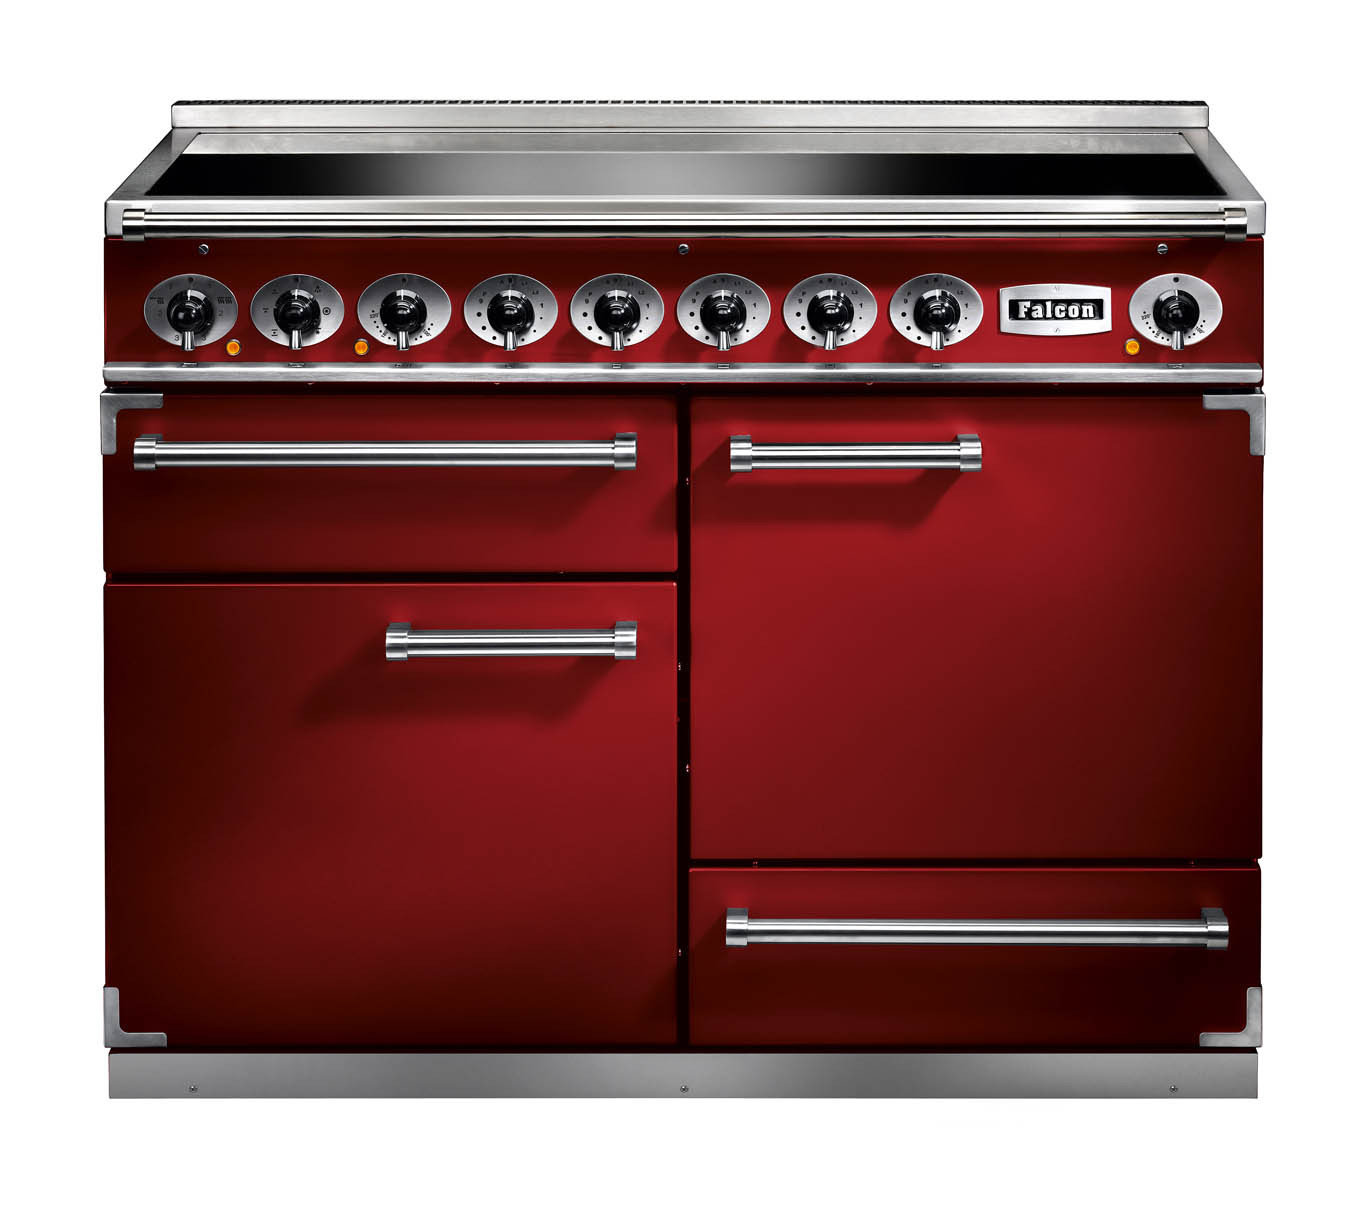 Falcon 1092 Deluxe Induction Cherry Red/Nickel Range Cooker